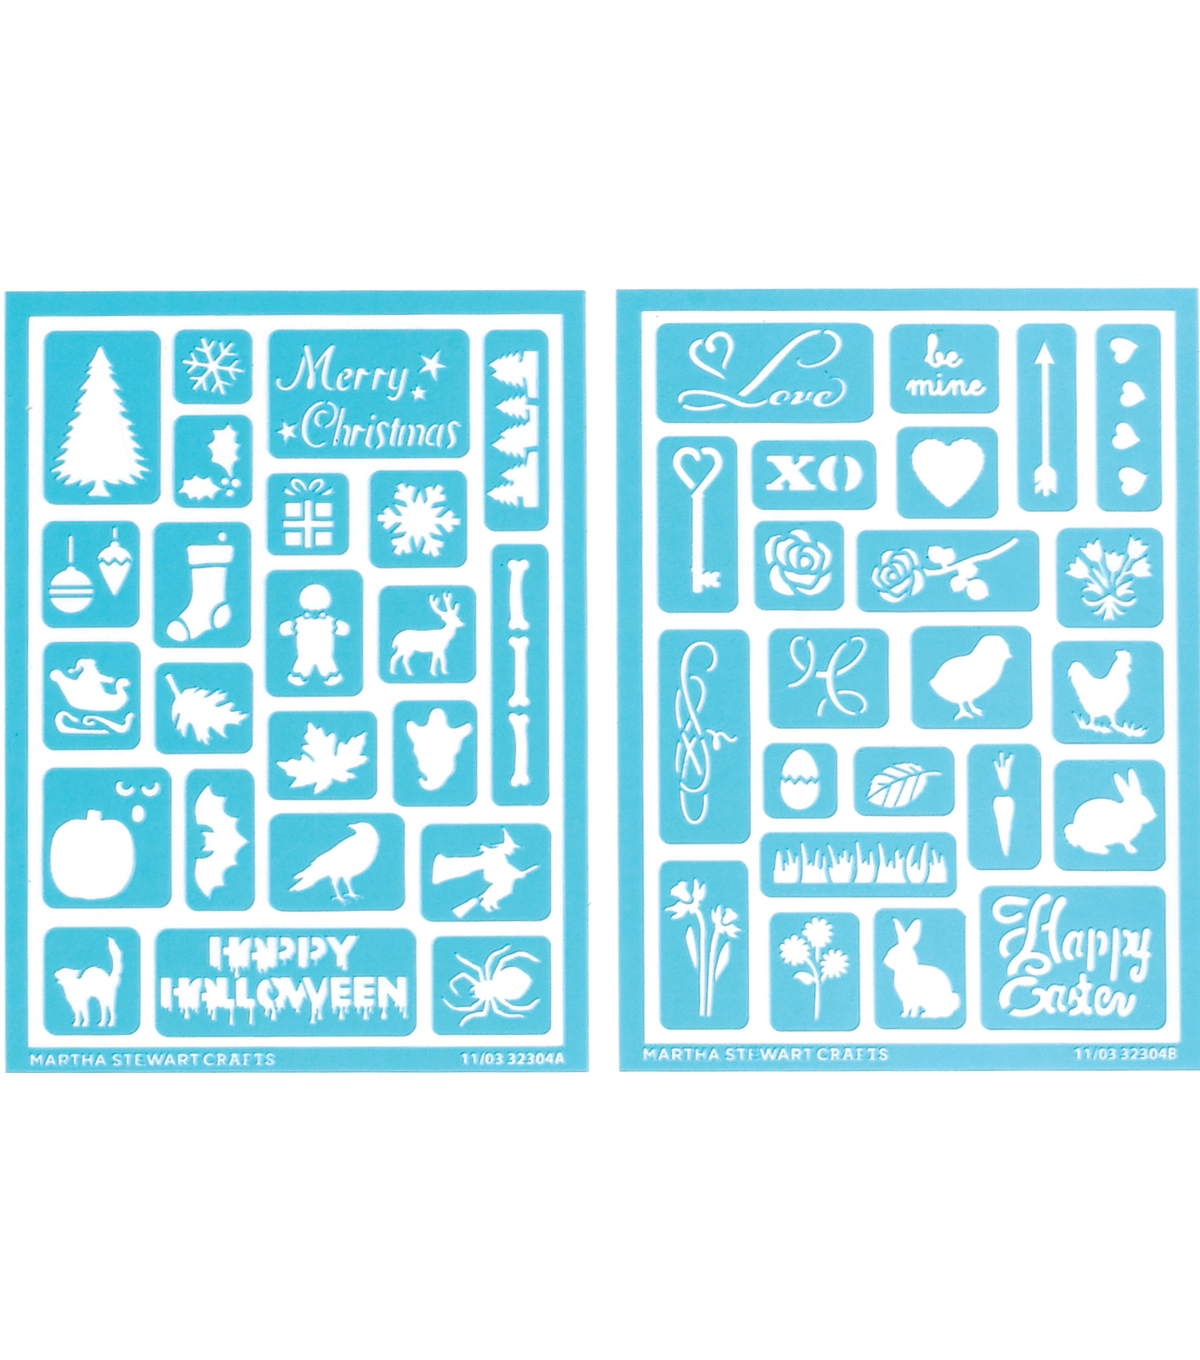 Martha Stewart Adhesive Stencils 2 Sheets/Pk-Holiday Icons II